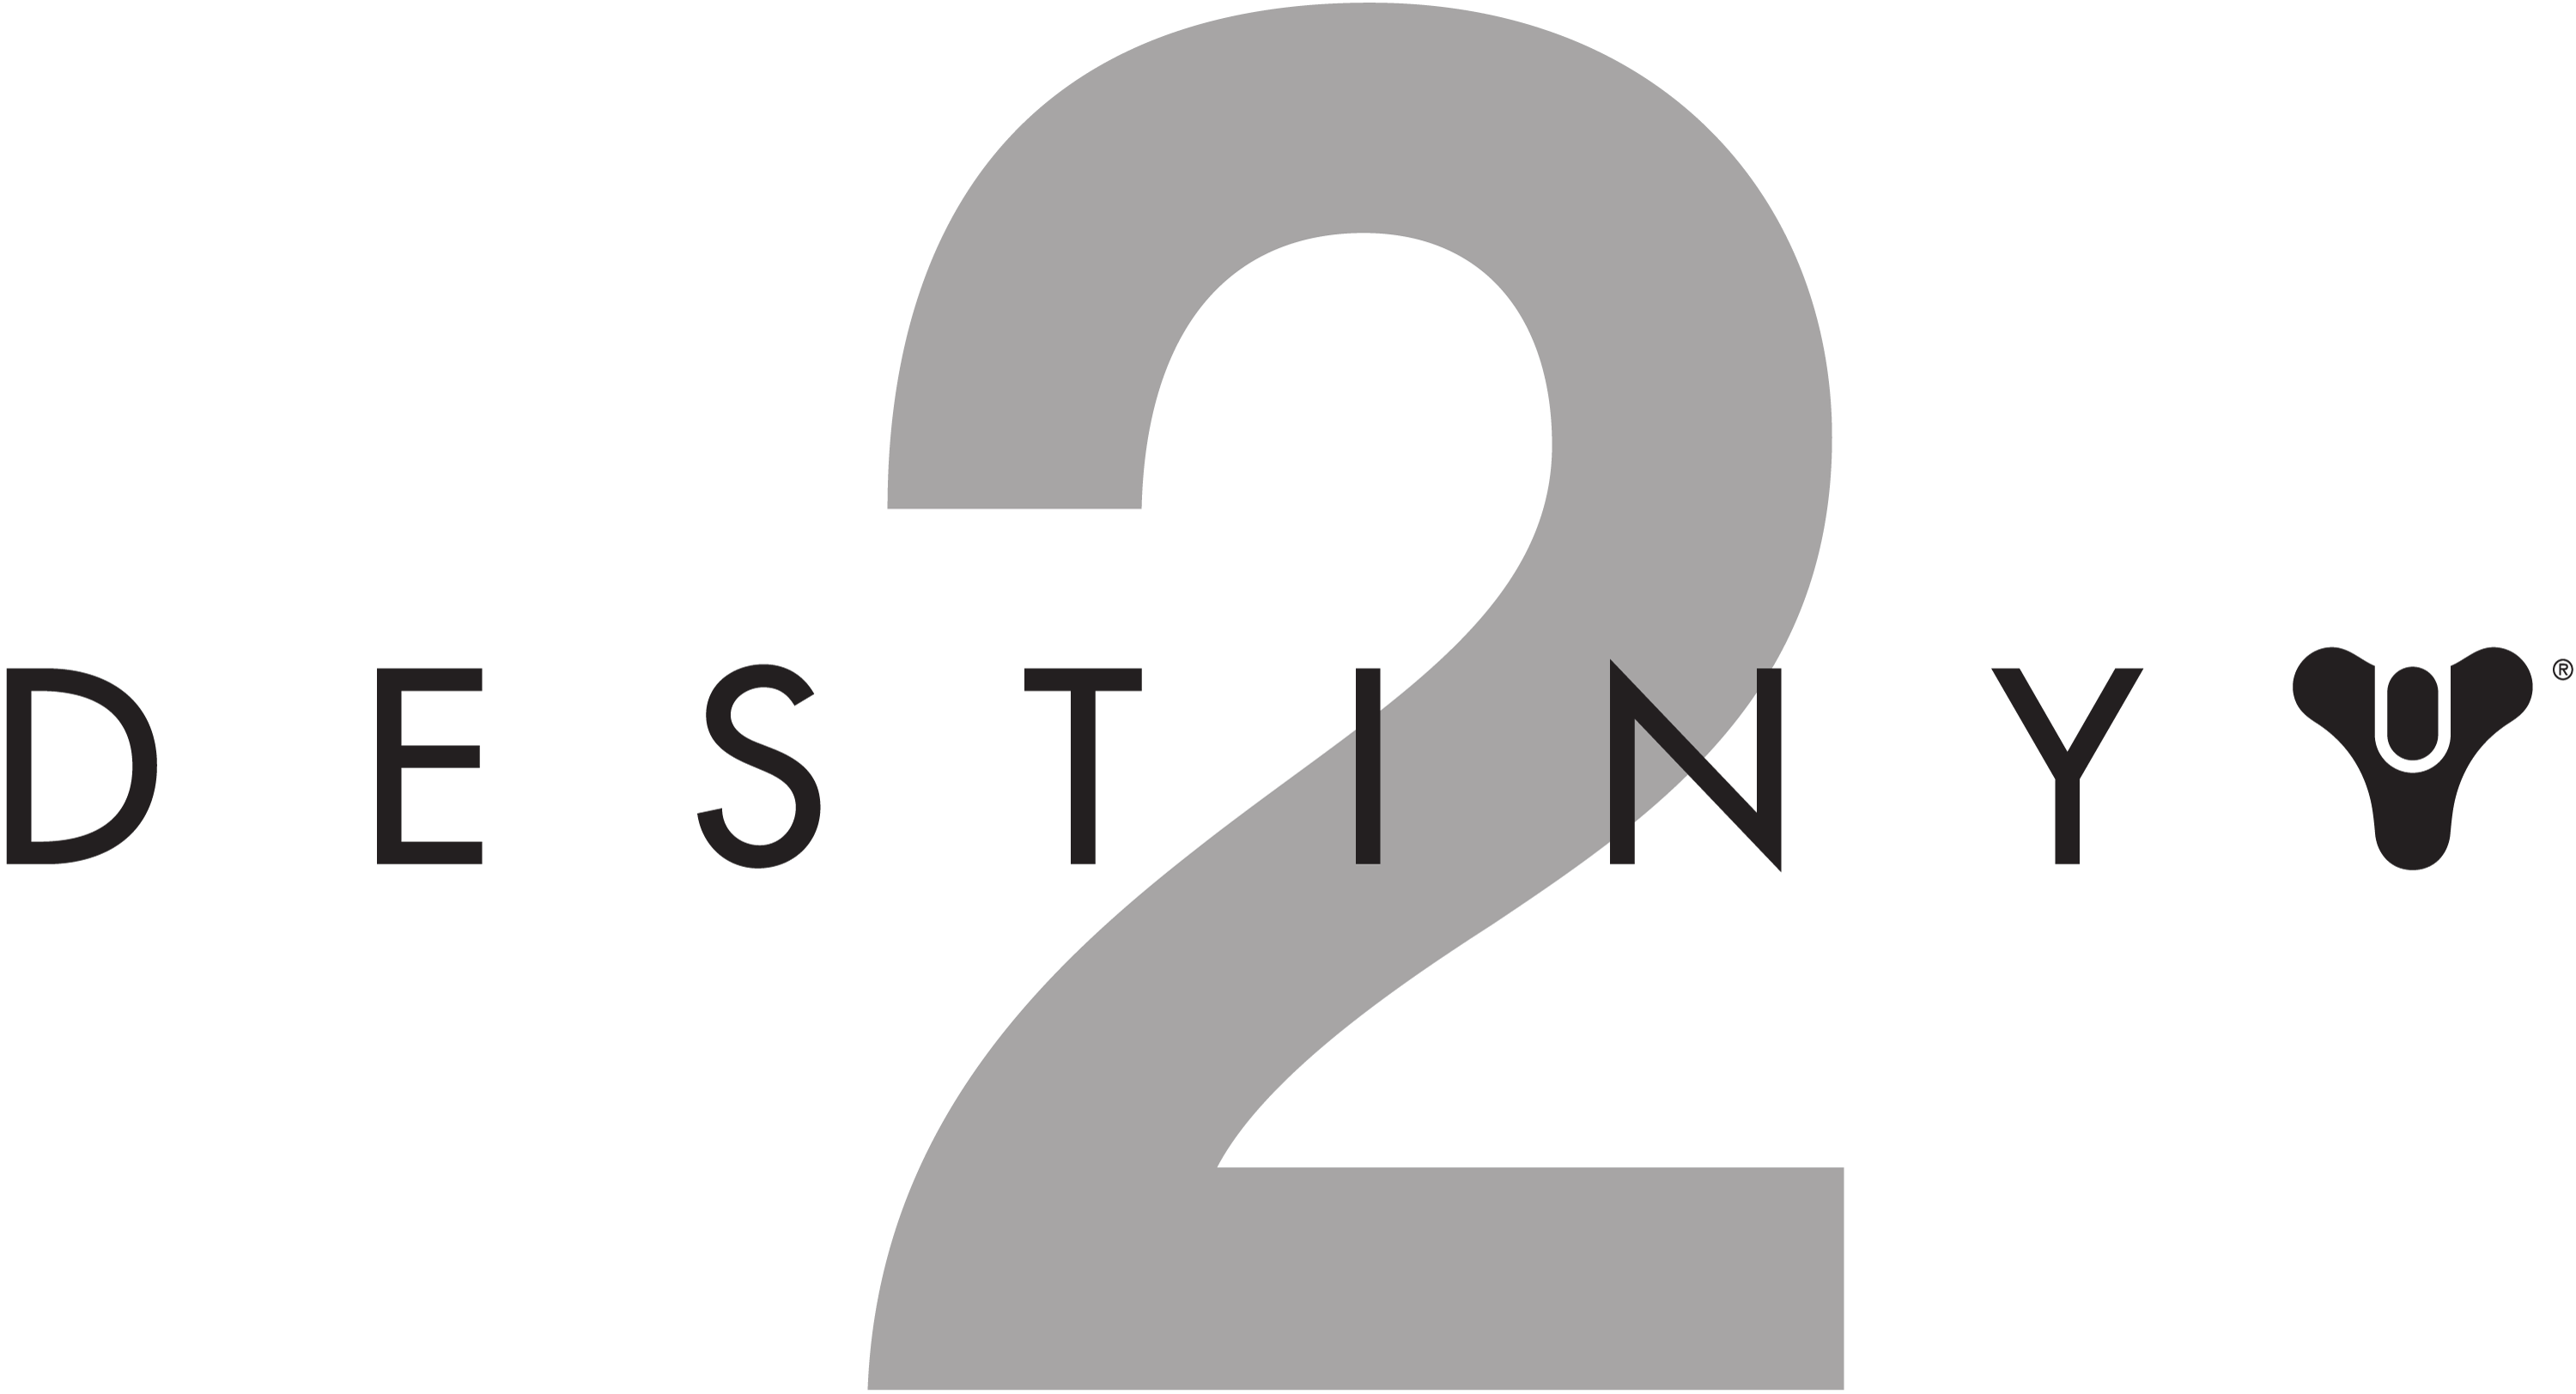 File:Destiny 2 logo.png - Wikimedia Commons